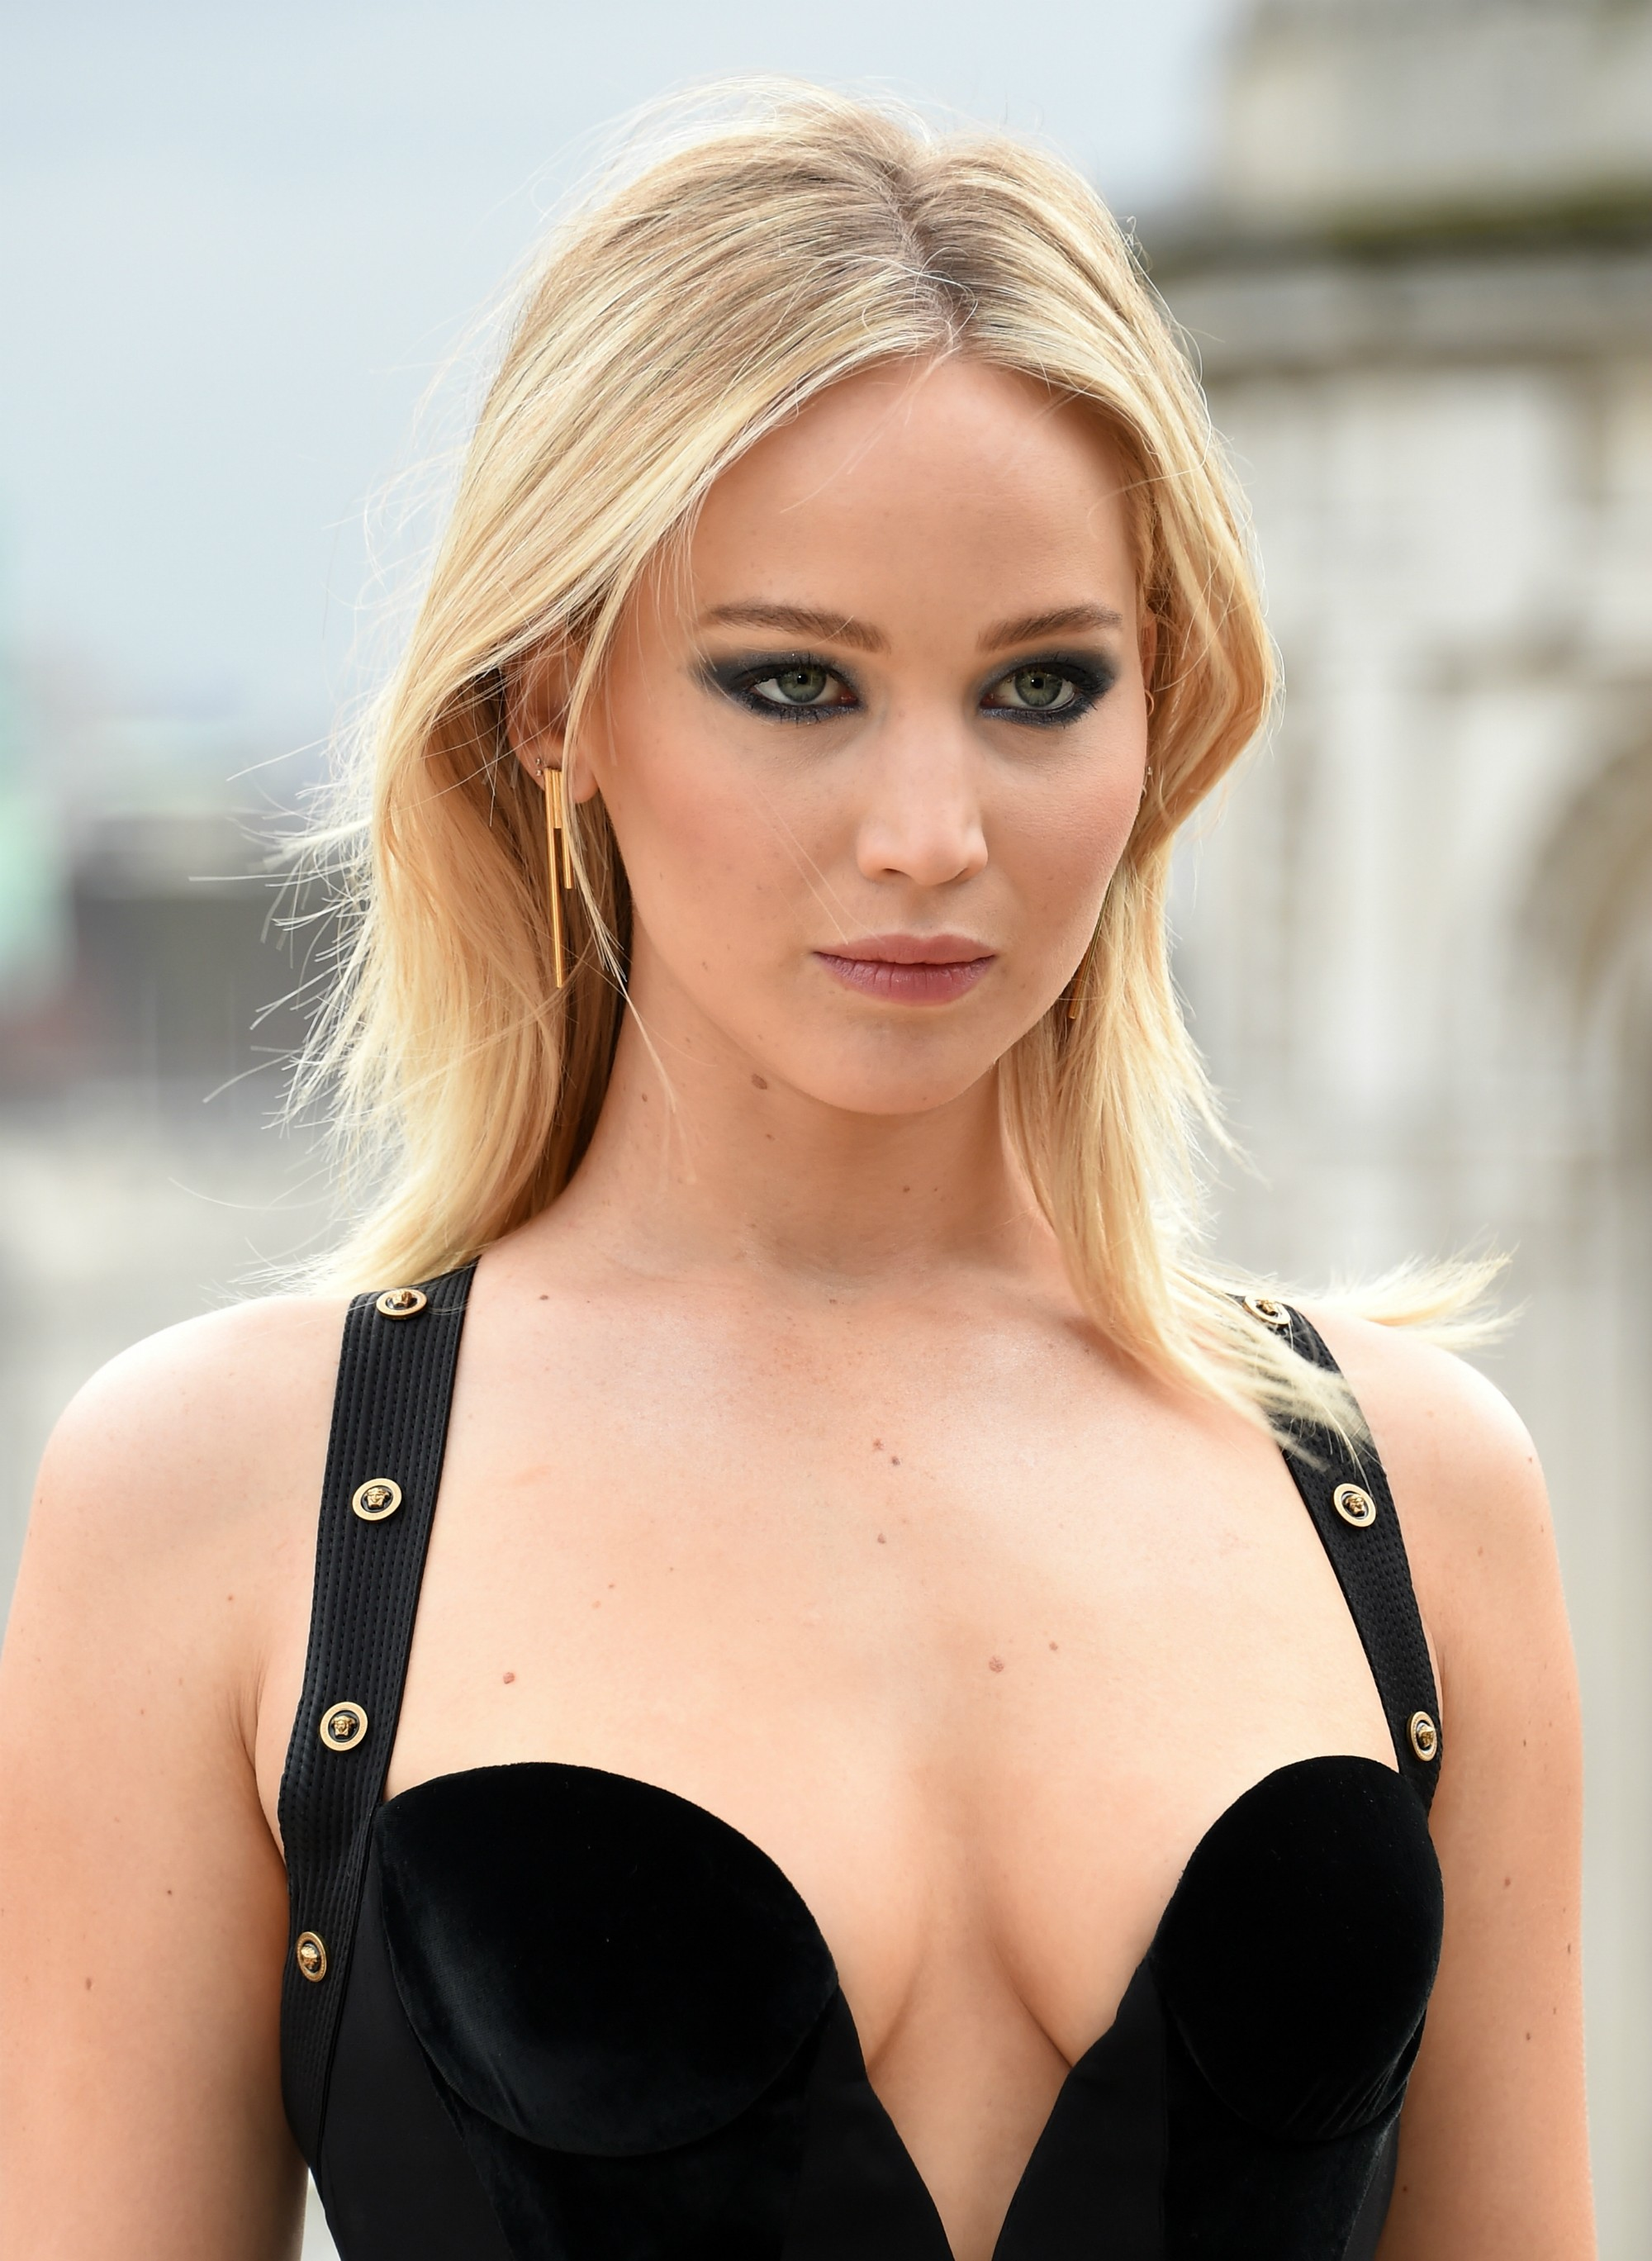 Jennifer Lawrence Reveals Her Body Insecurities While - Jennifer Lawrence , HD Wallpaper & Backgrounds